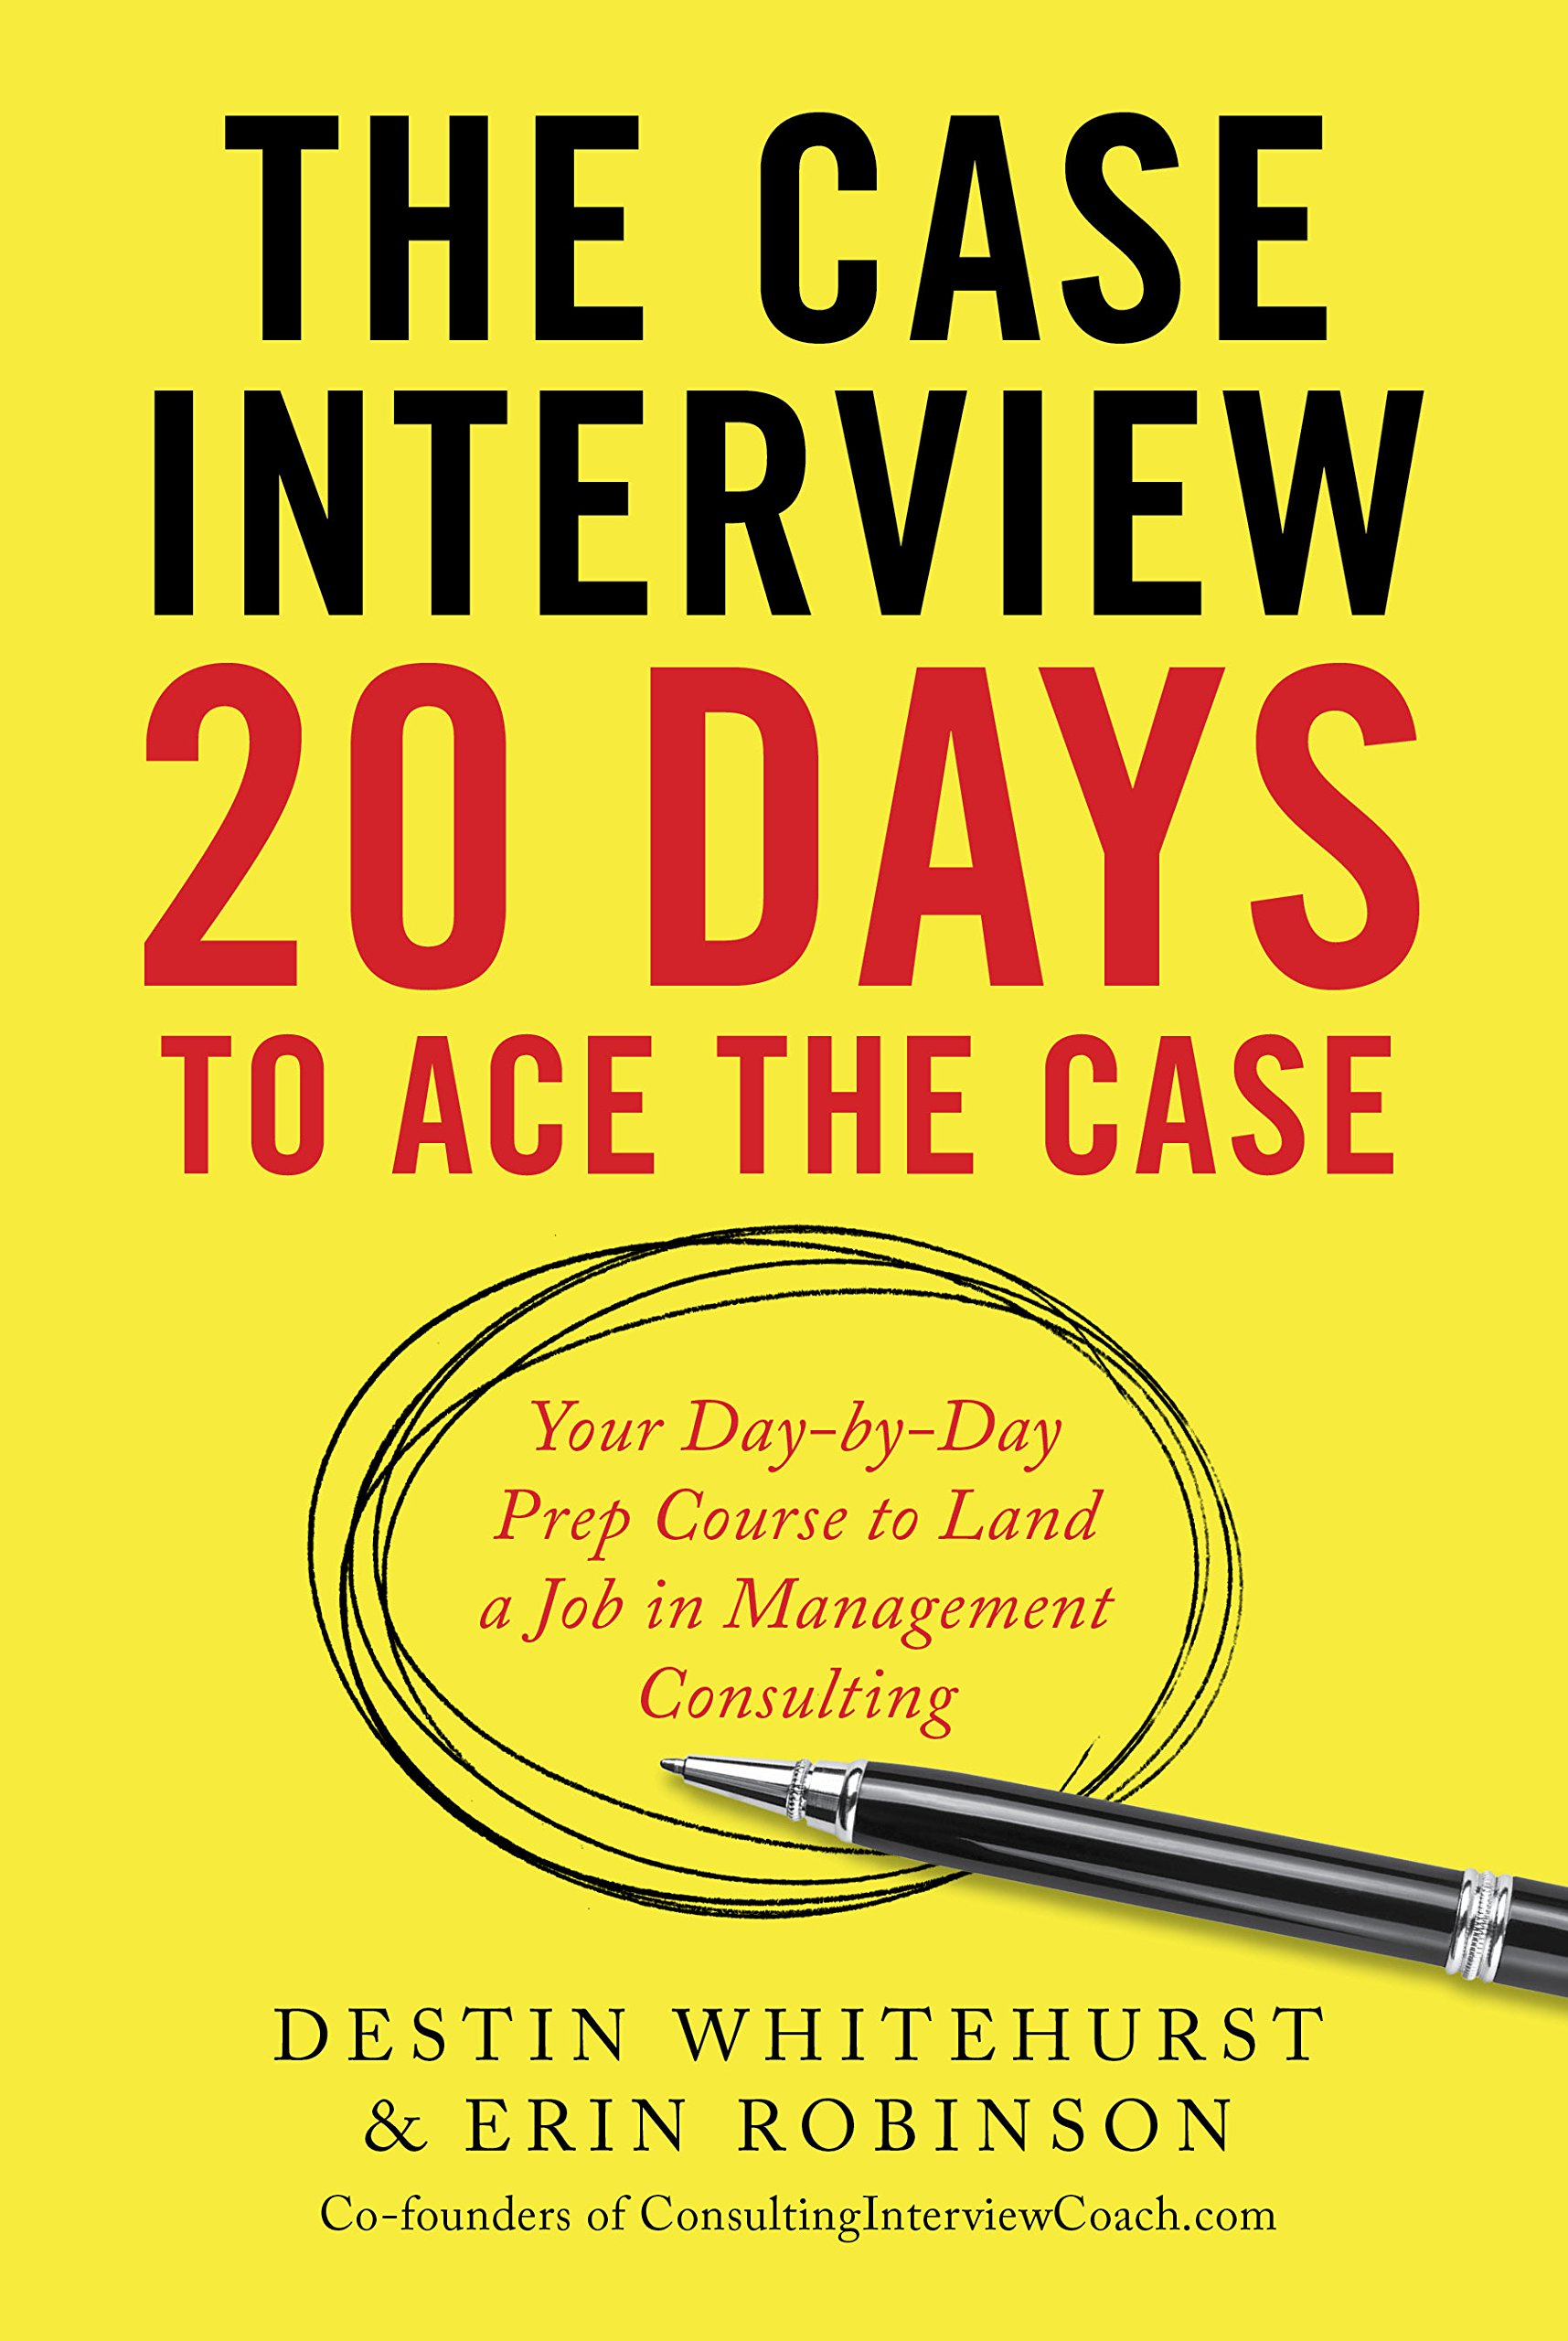 Image OfThe Case Interview: 20 Days To Ace The Case: Your Day-by-dDy Prep Course To Land A Job In Management Consulting